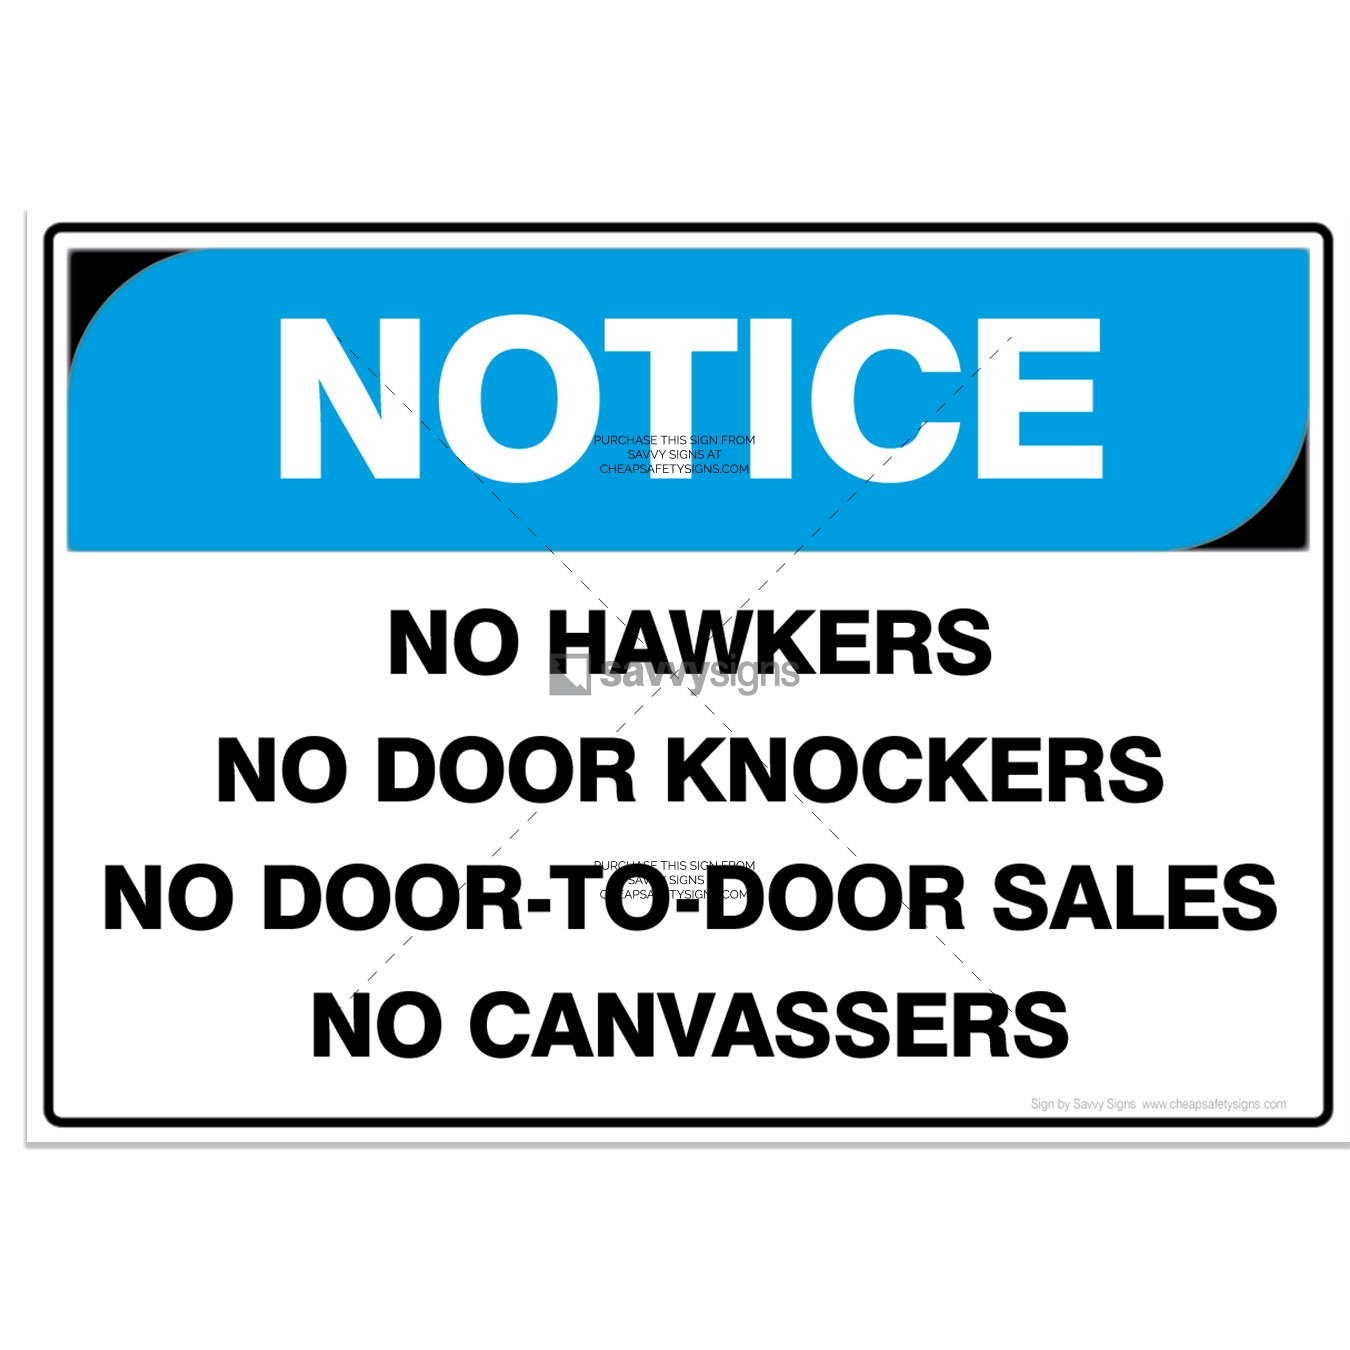 SSNOT3029-NOTICE-Workplace-Safety-Signs_Savvy-Signs_v3